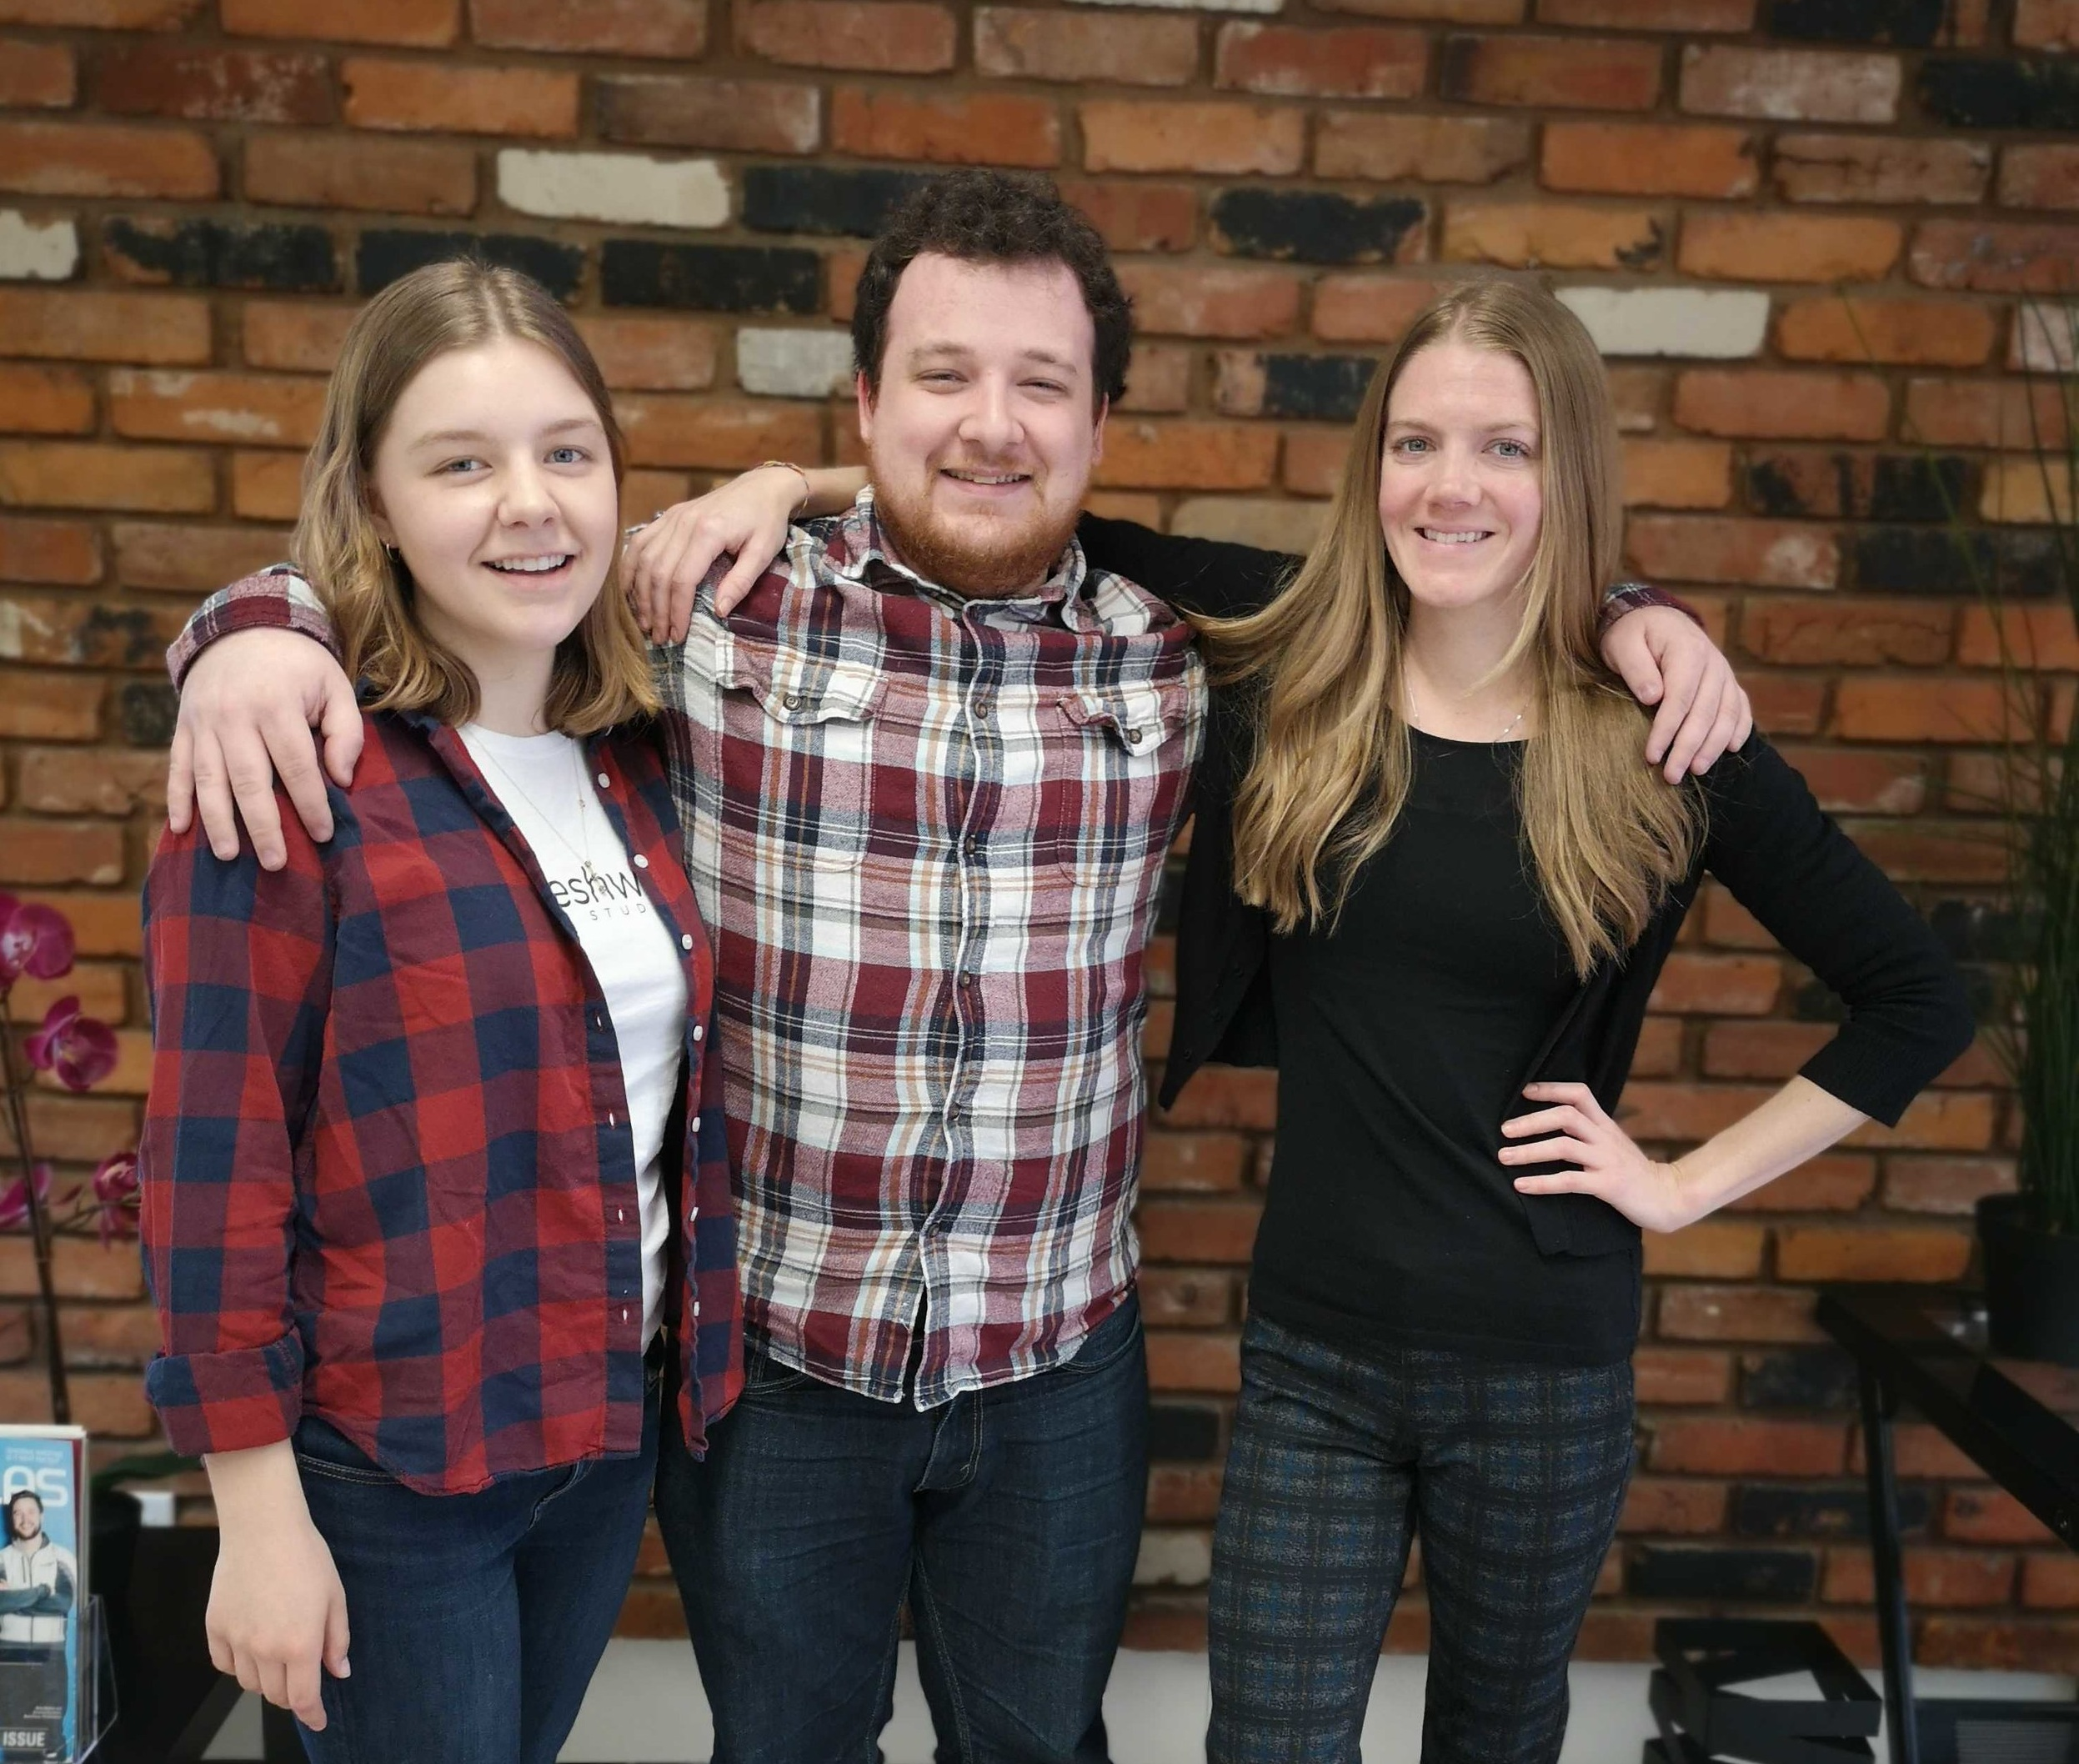 The FreshWorks Business Analysts that have your user stories covered during the discovery phase of your development project: Sienna, Zac, and Stephanie